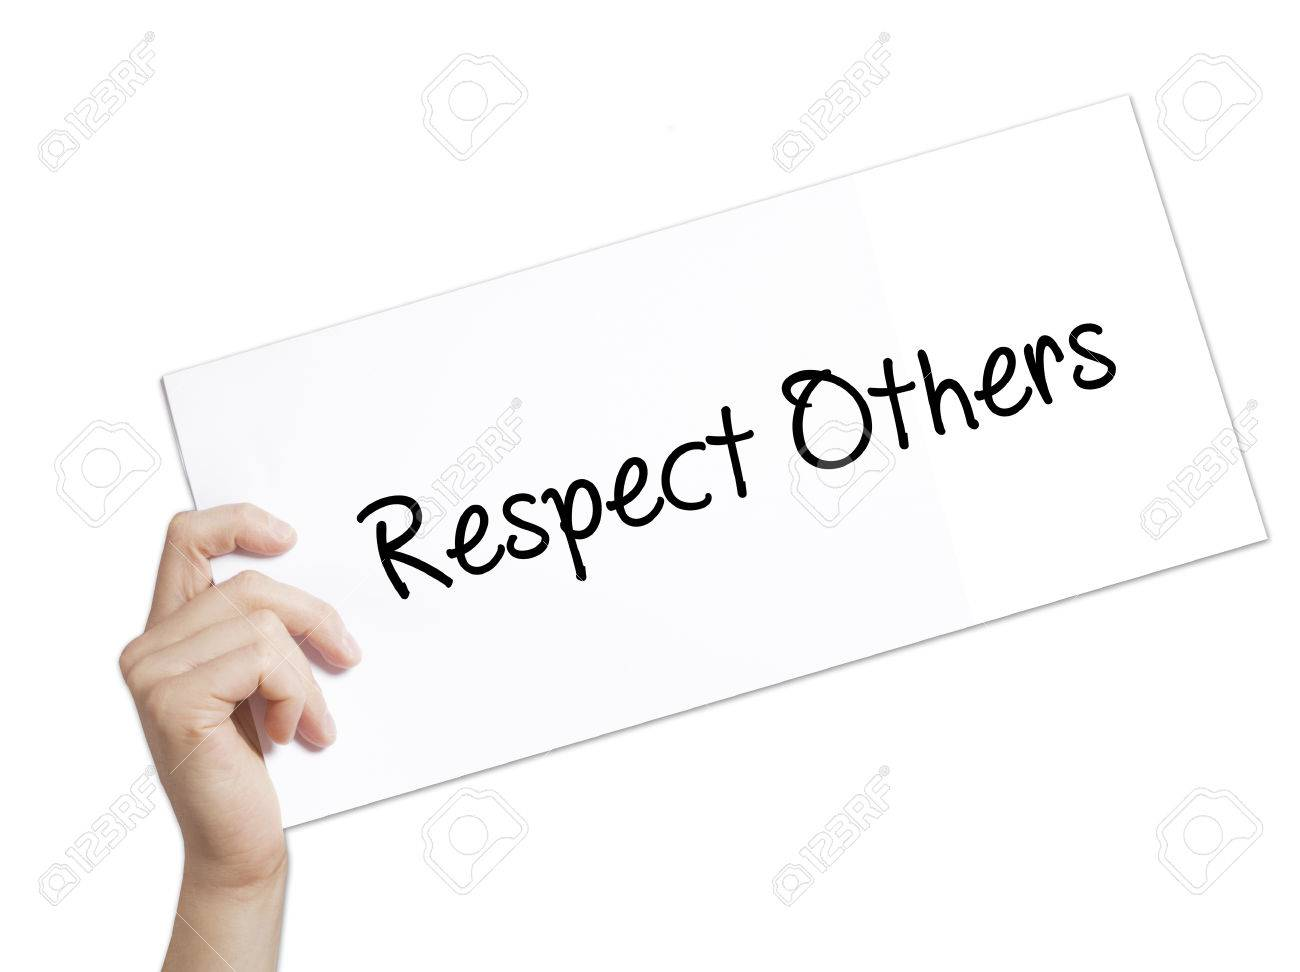 a paper on respect